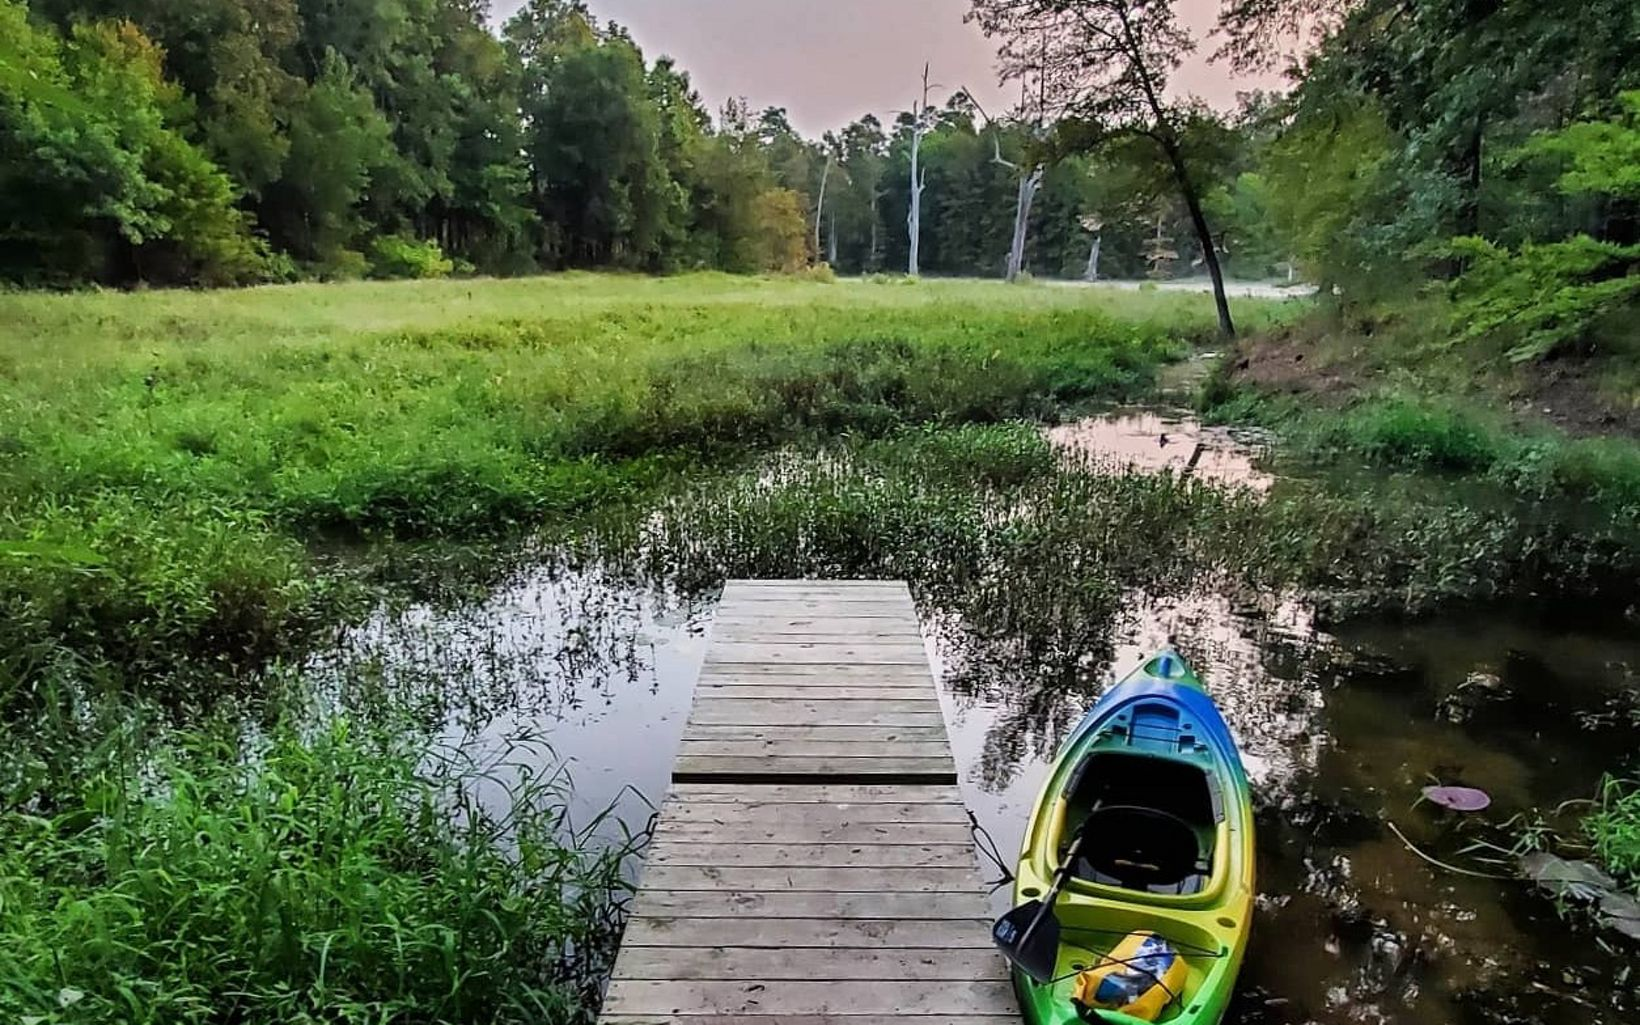 A kayak next to a small wooden dock.